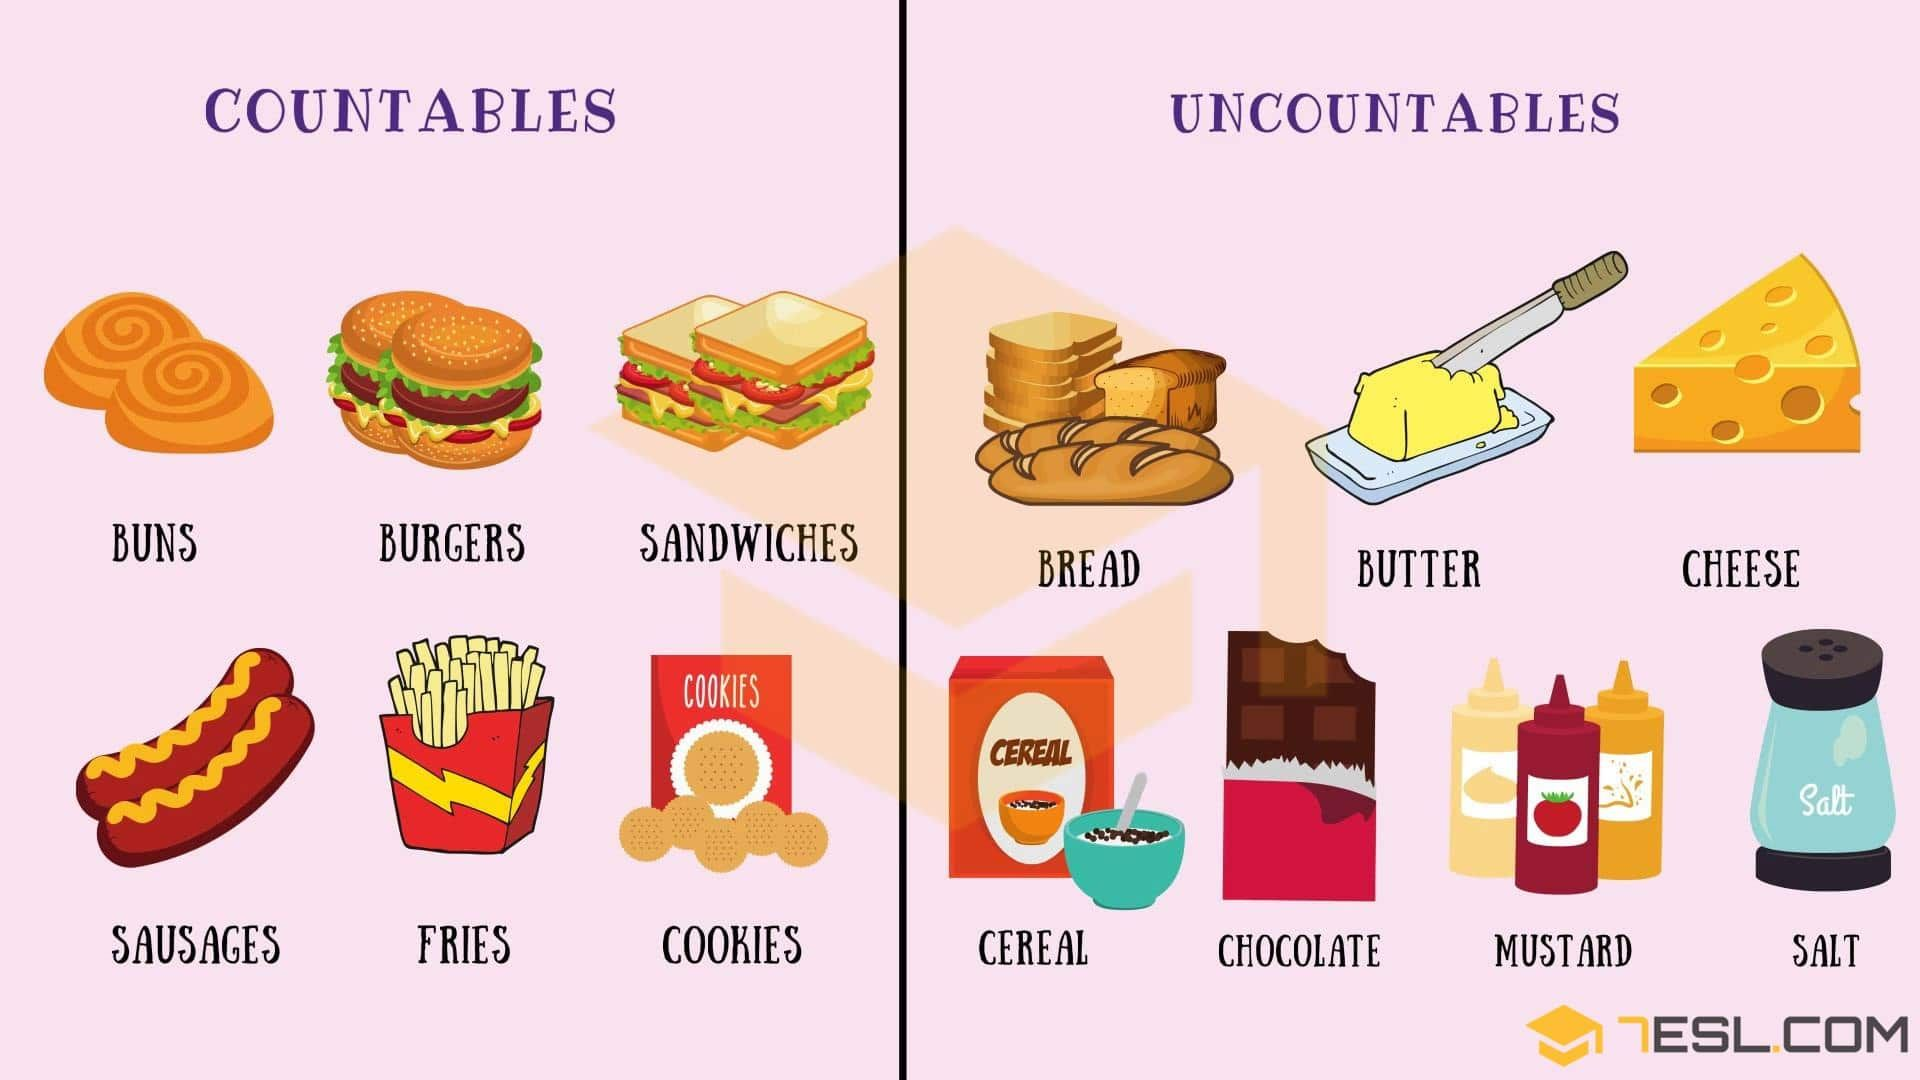 Countable and Uncountable Food Helpful List & Examples